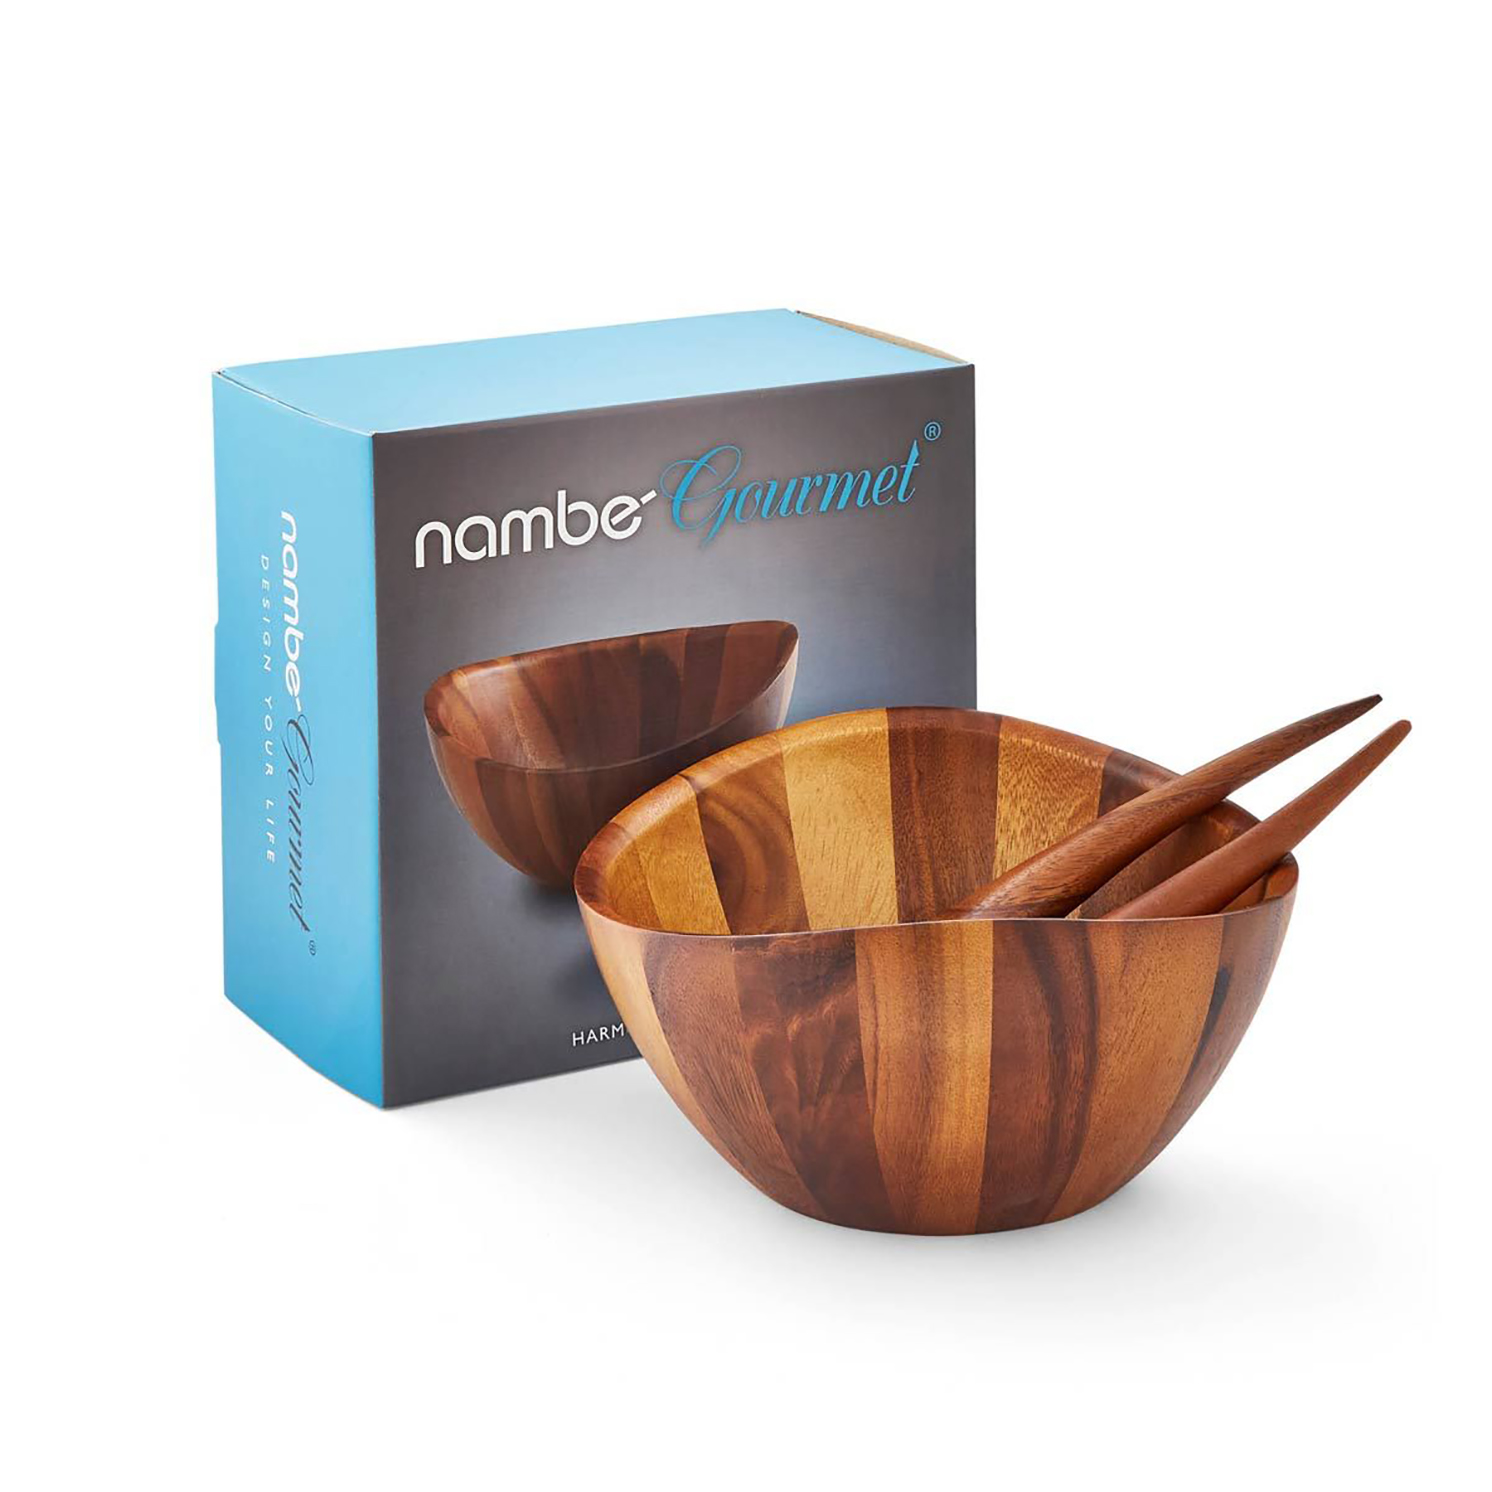 Nambe – Harmony Salad Bowl and Servers in Gift Box